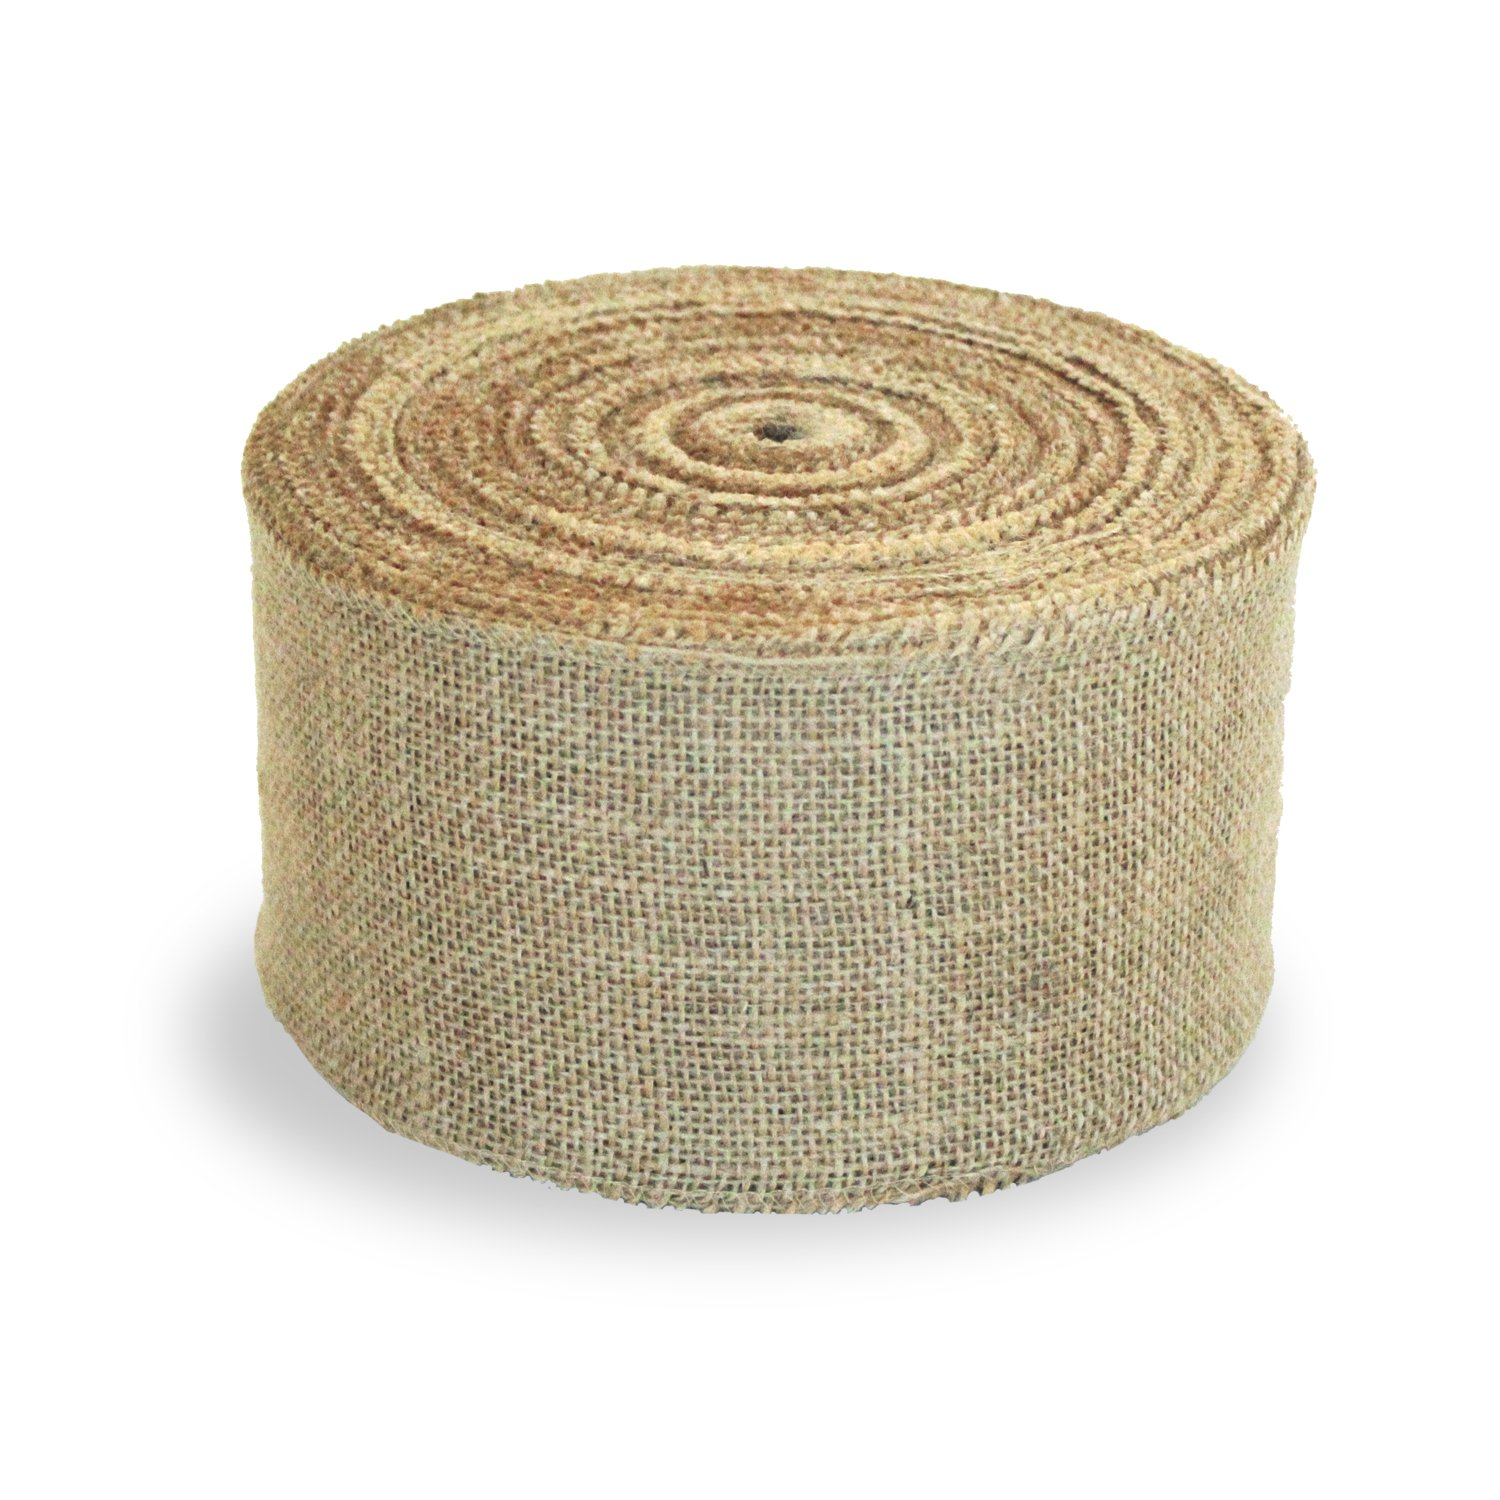 Craft Burlap Ribbon No Fray Edges 6 Inches by 50 Yards Wreath Ribbon by Burlap and Beyond (Image #3)